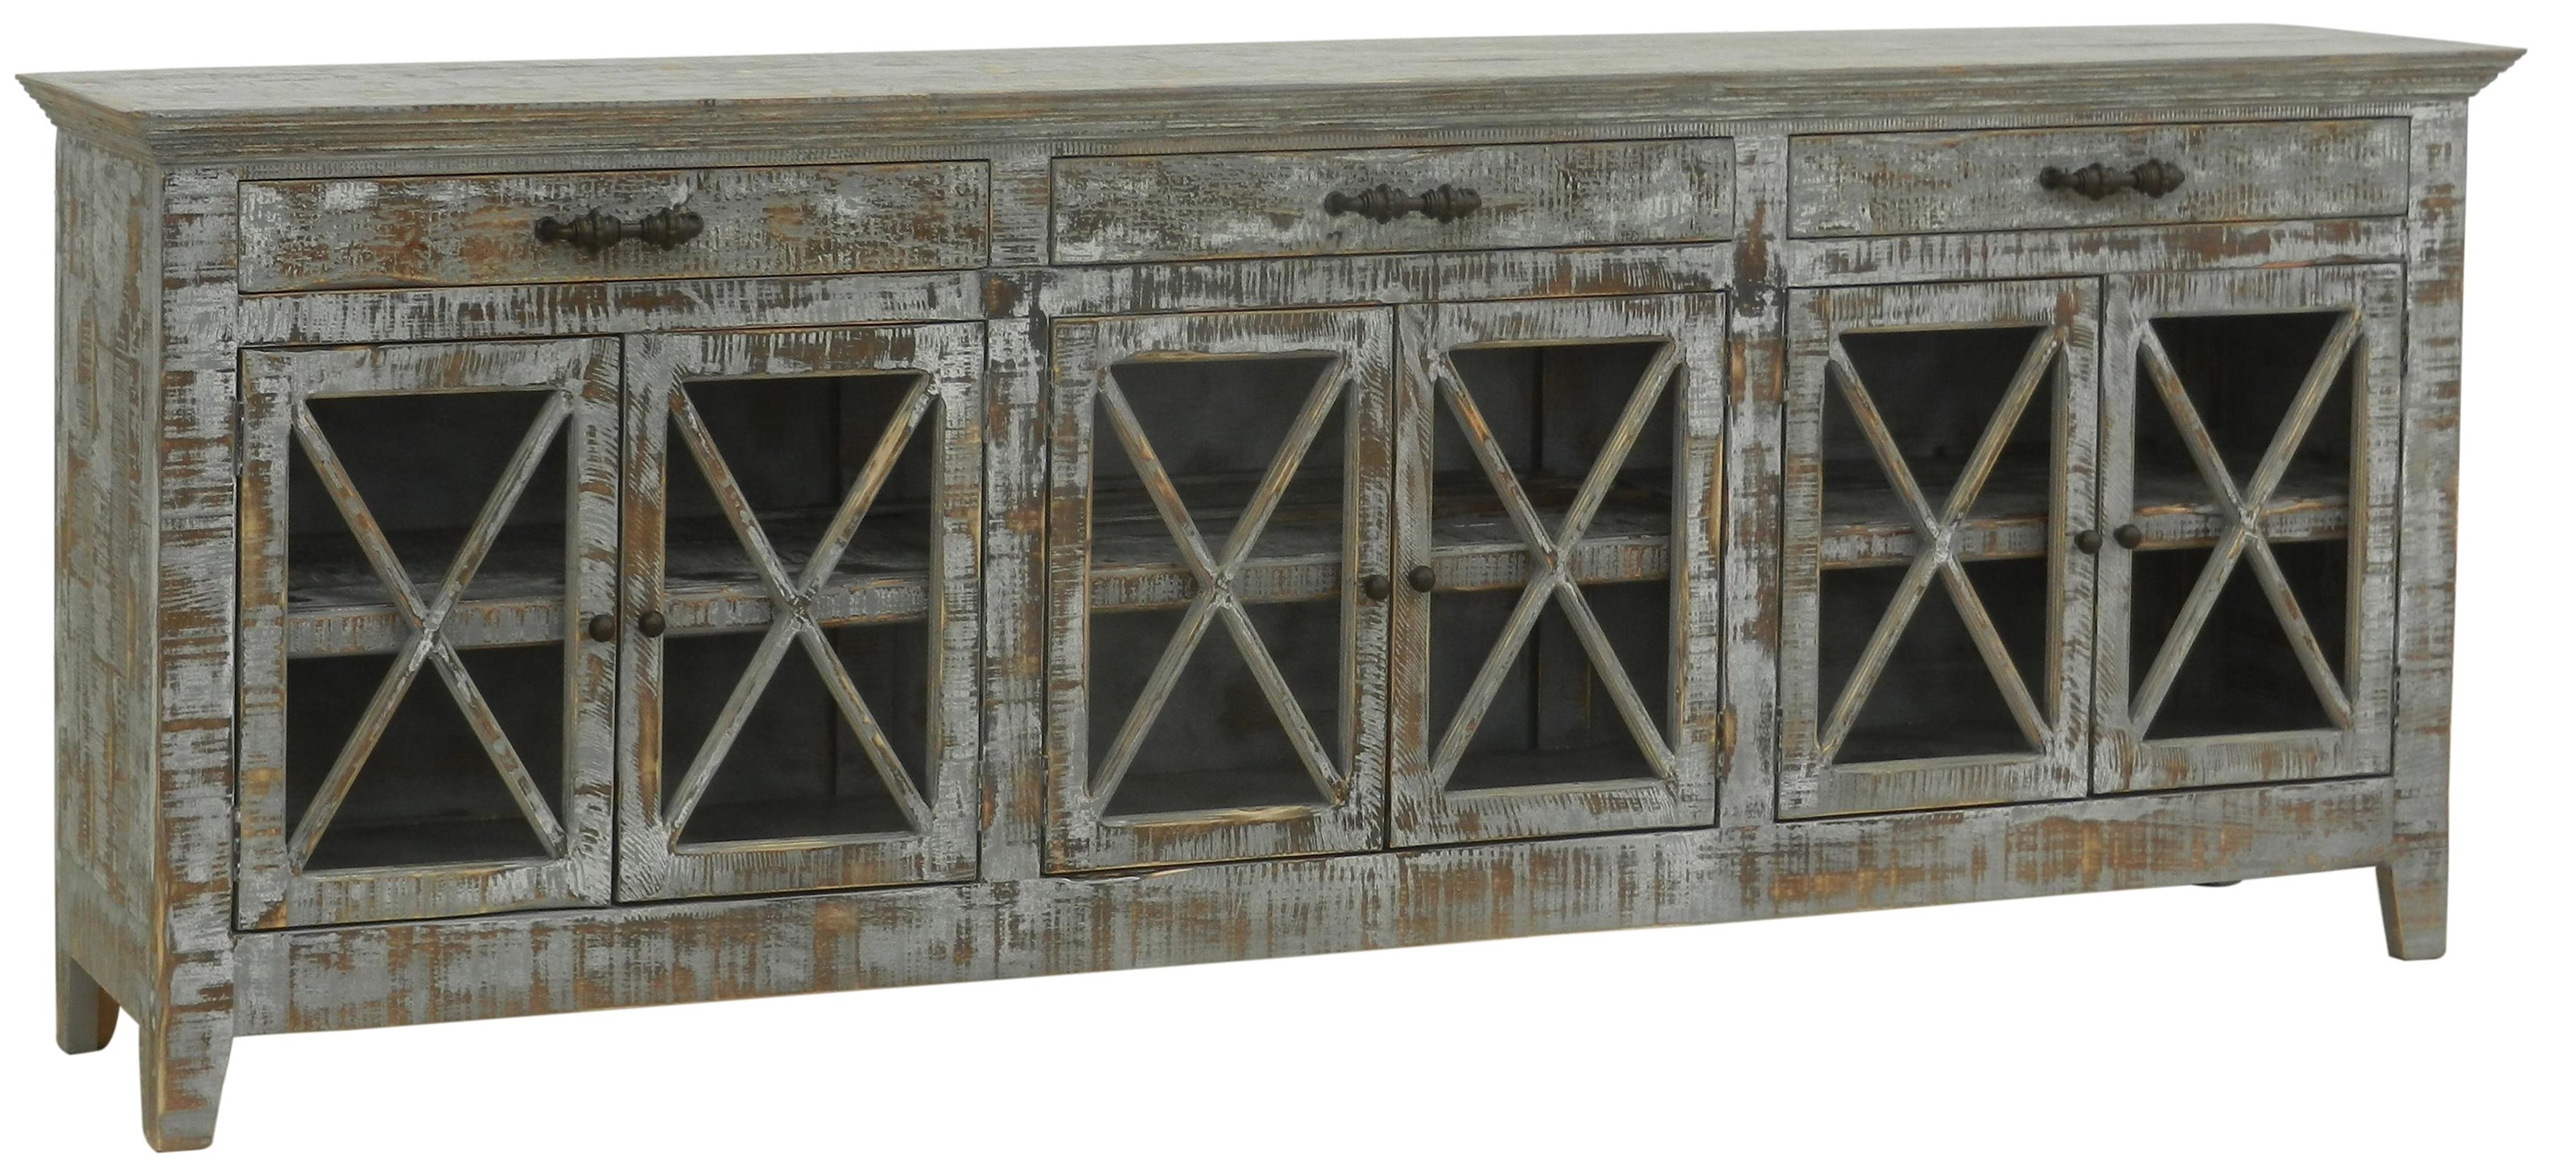 Furniture Source International Consoles Butlers Media Console - Item Number: FSI-FER-474CON-FARMHOUSE-BLUE